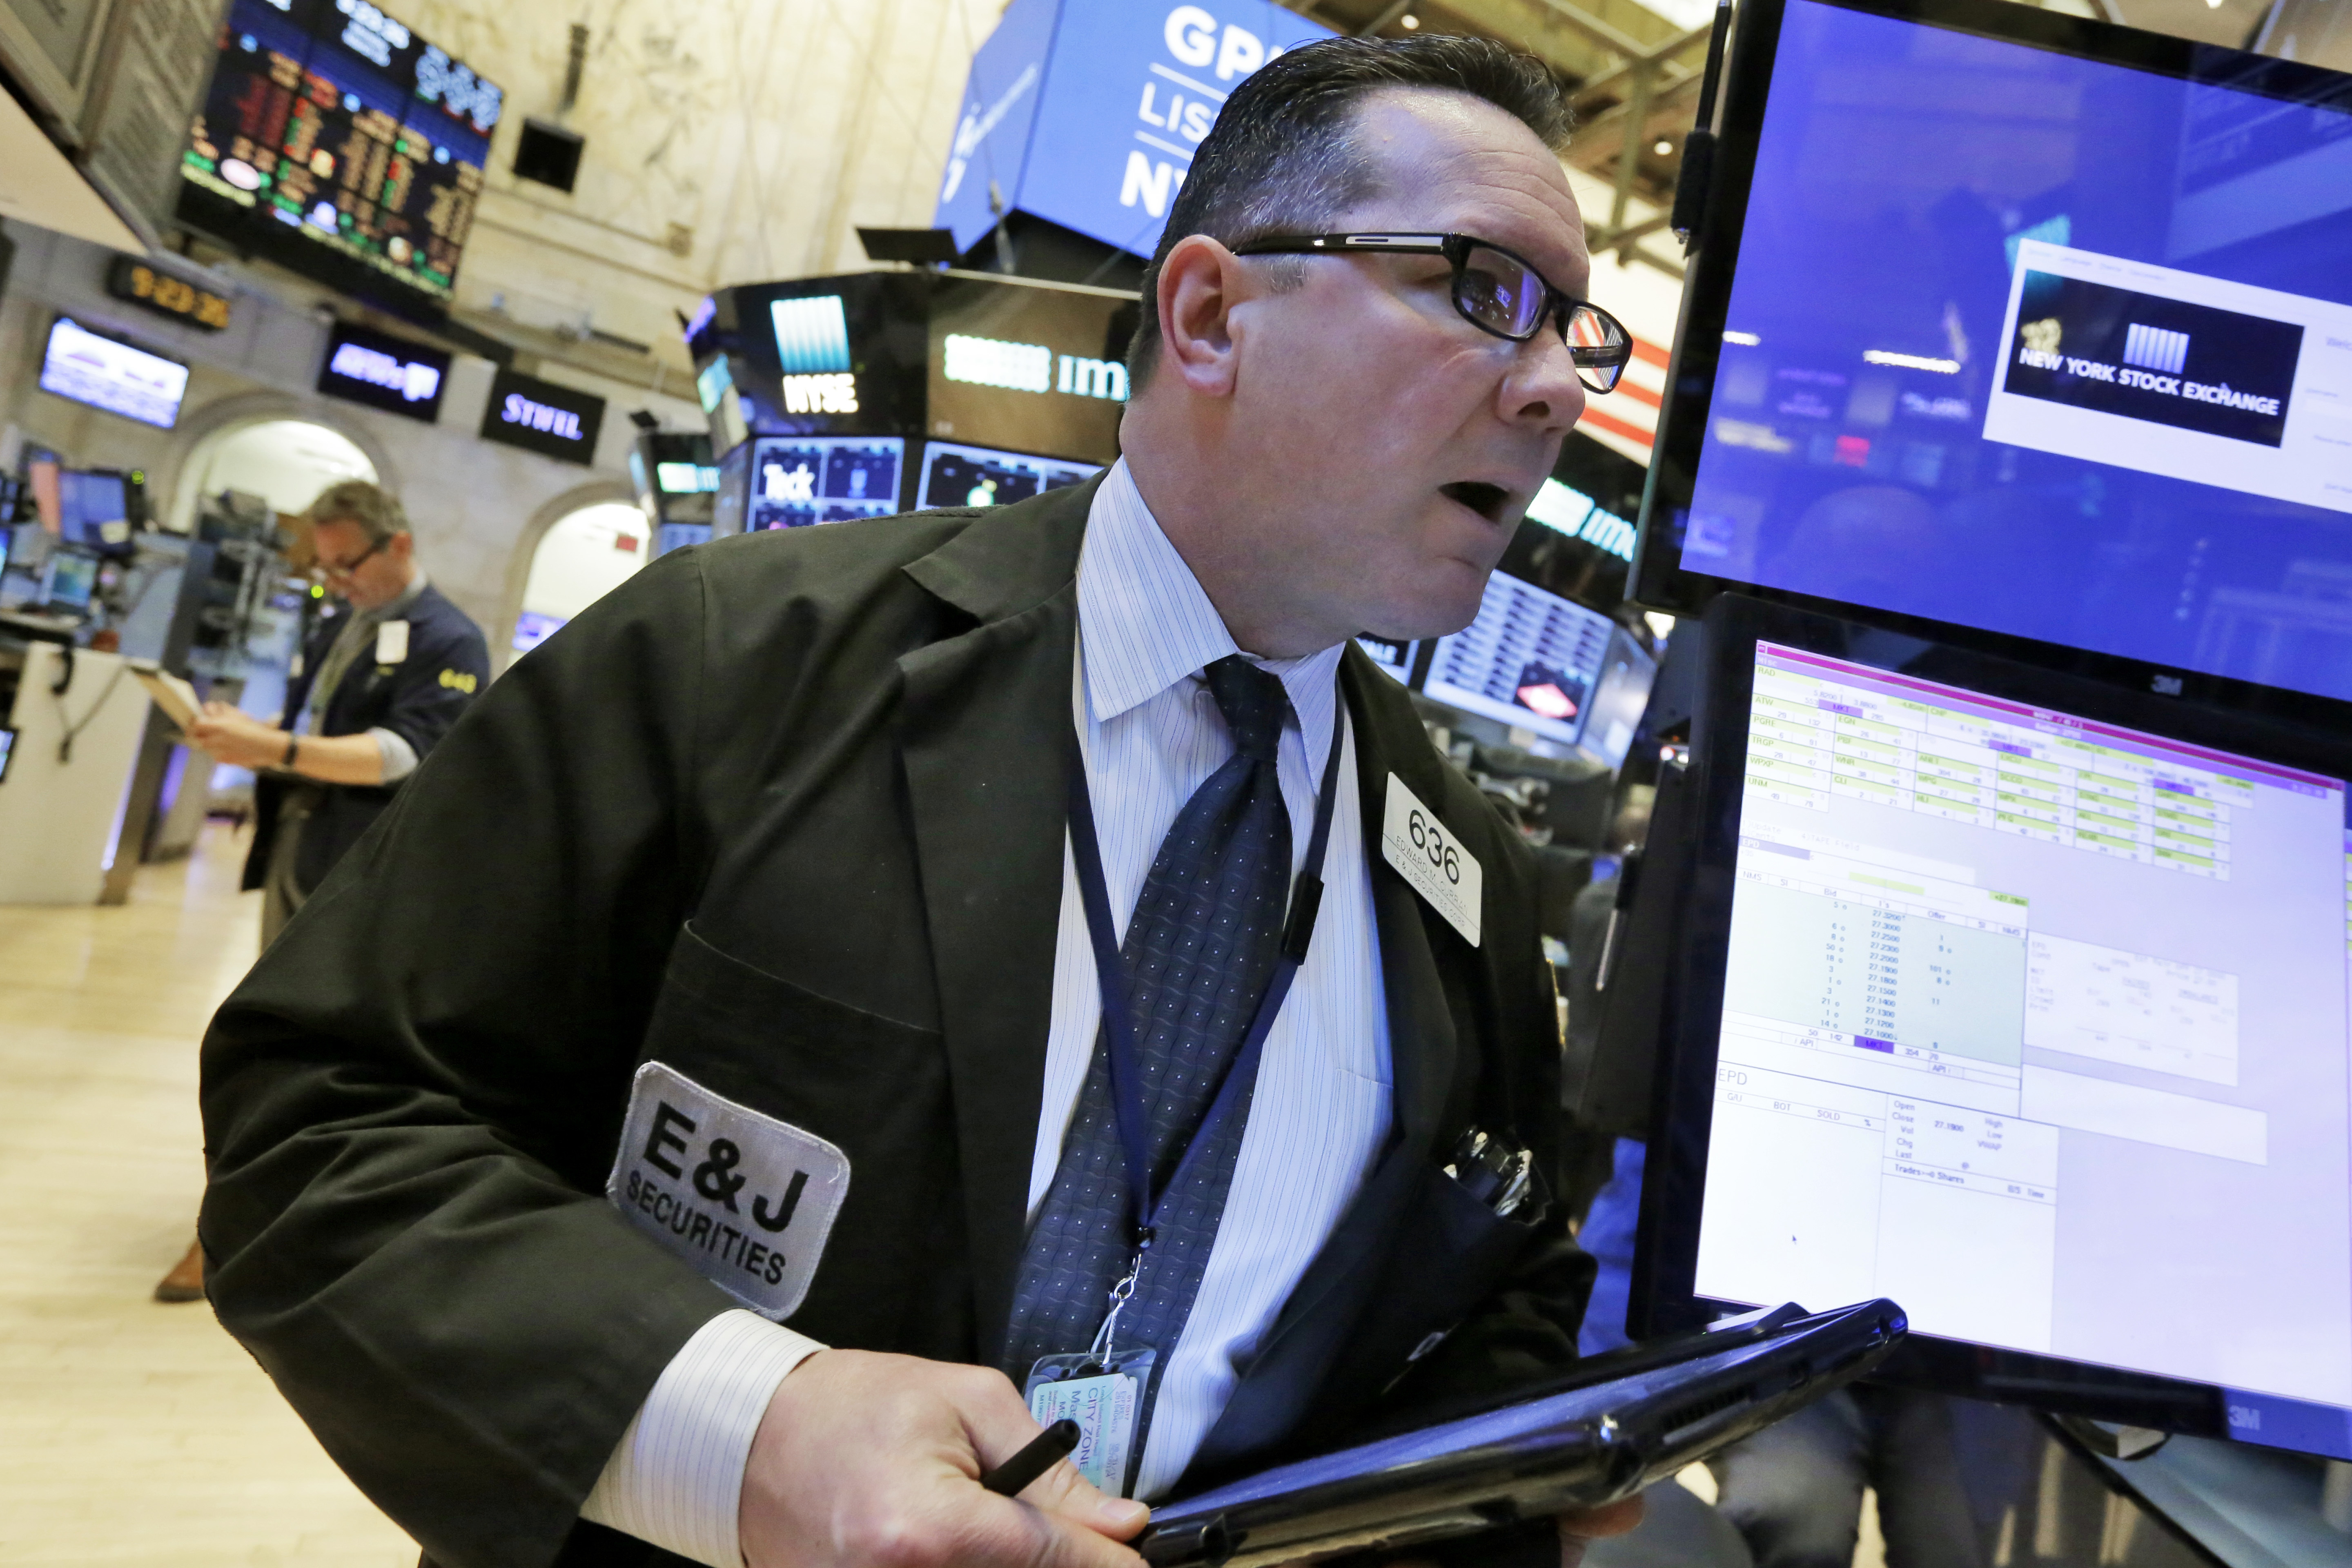 Financial Markets Wall Street Trader Edward Curran works on the floor of the New York Stock Exchange, Monday, March 20, 2017. U.S. stocks are opening slightly lower, led by losses in banks after Britain announced it will formally trigger the process of leaving the European Union. (AP Photo/Richard Drew)